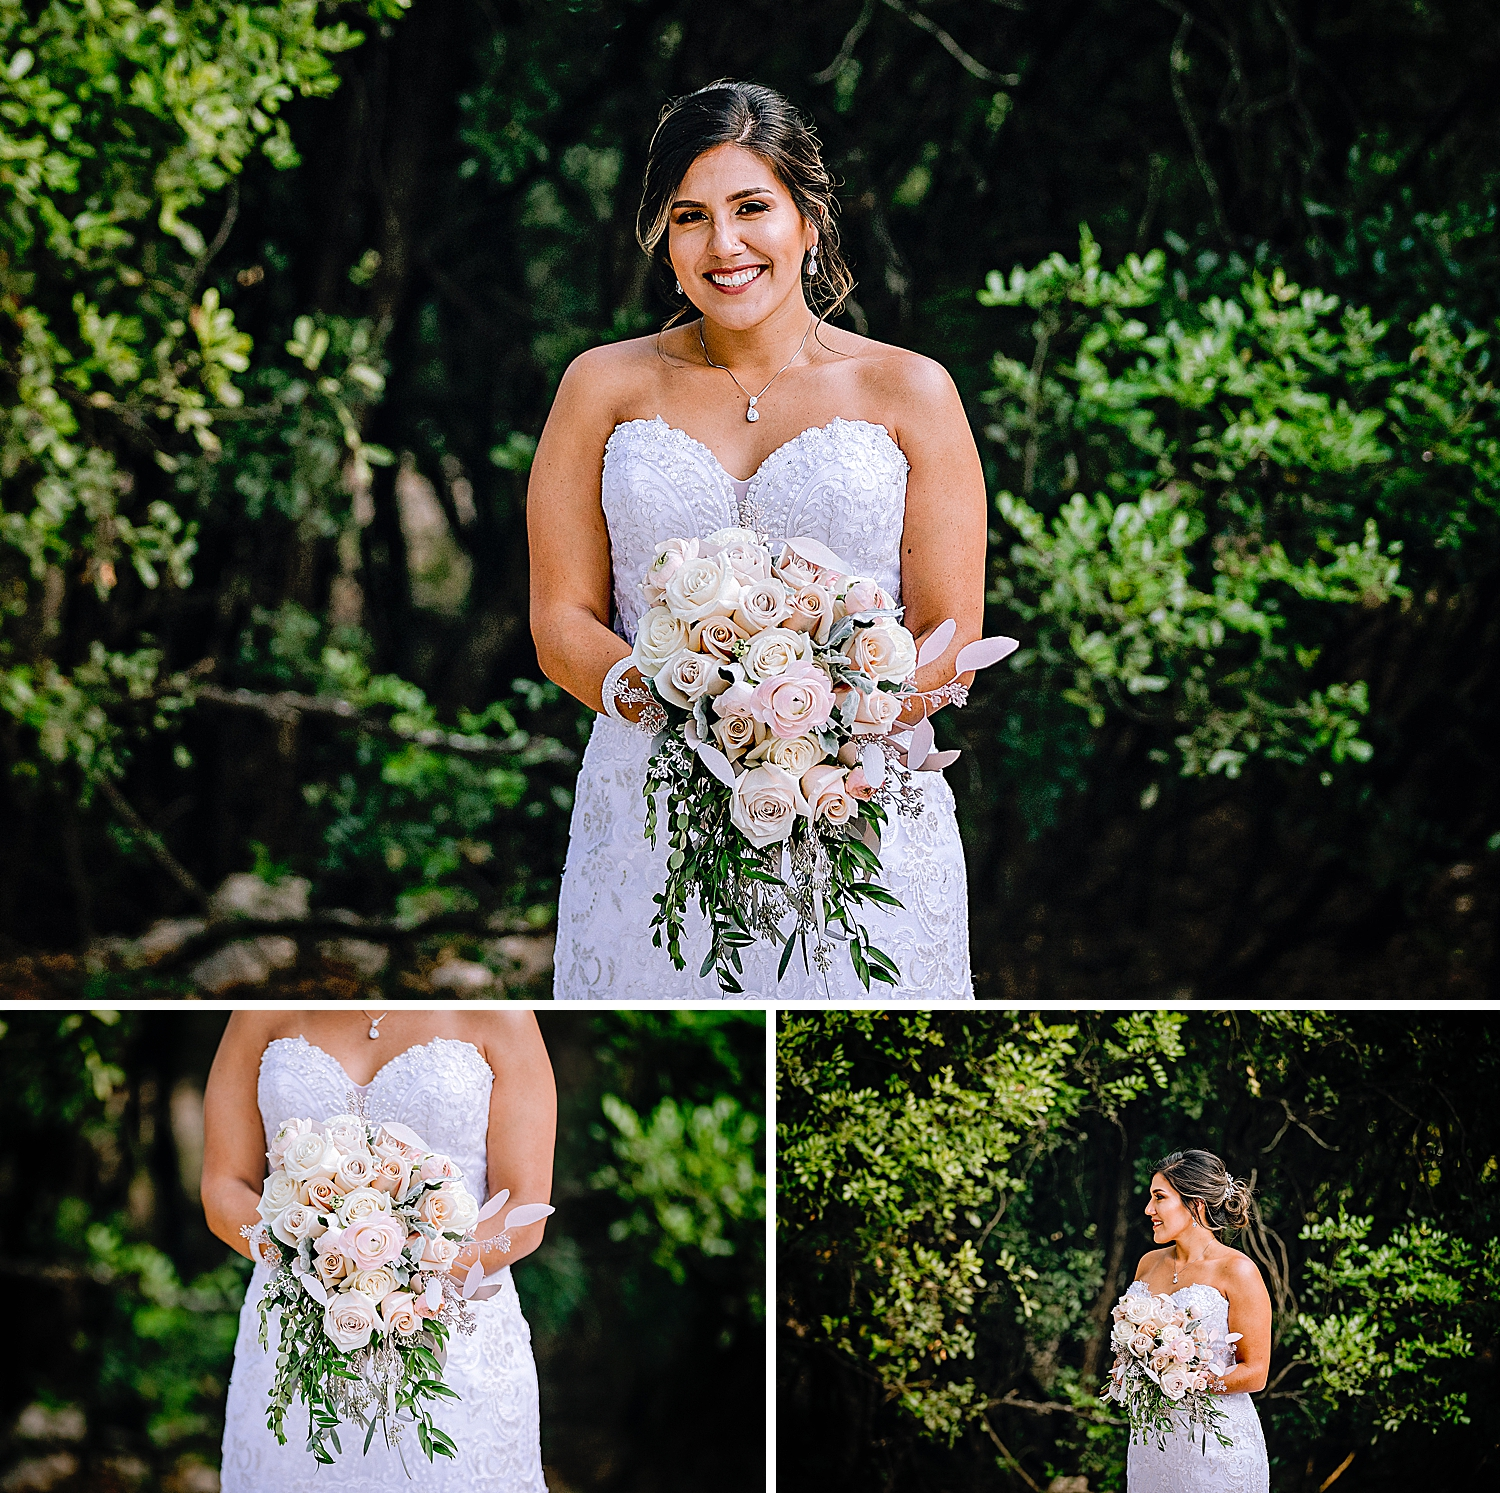 Carly-Barton-Photography-Bridal-Photos-Chadelier-of-Gruene-New-Braunfels-Wedding-Photographer_0014.jpg